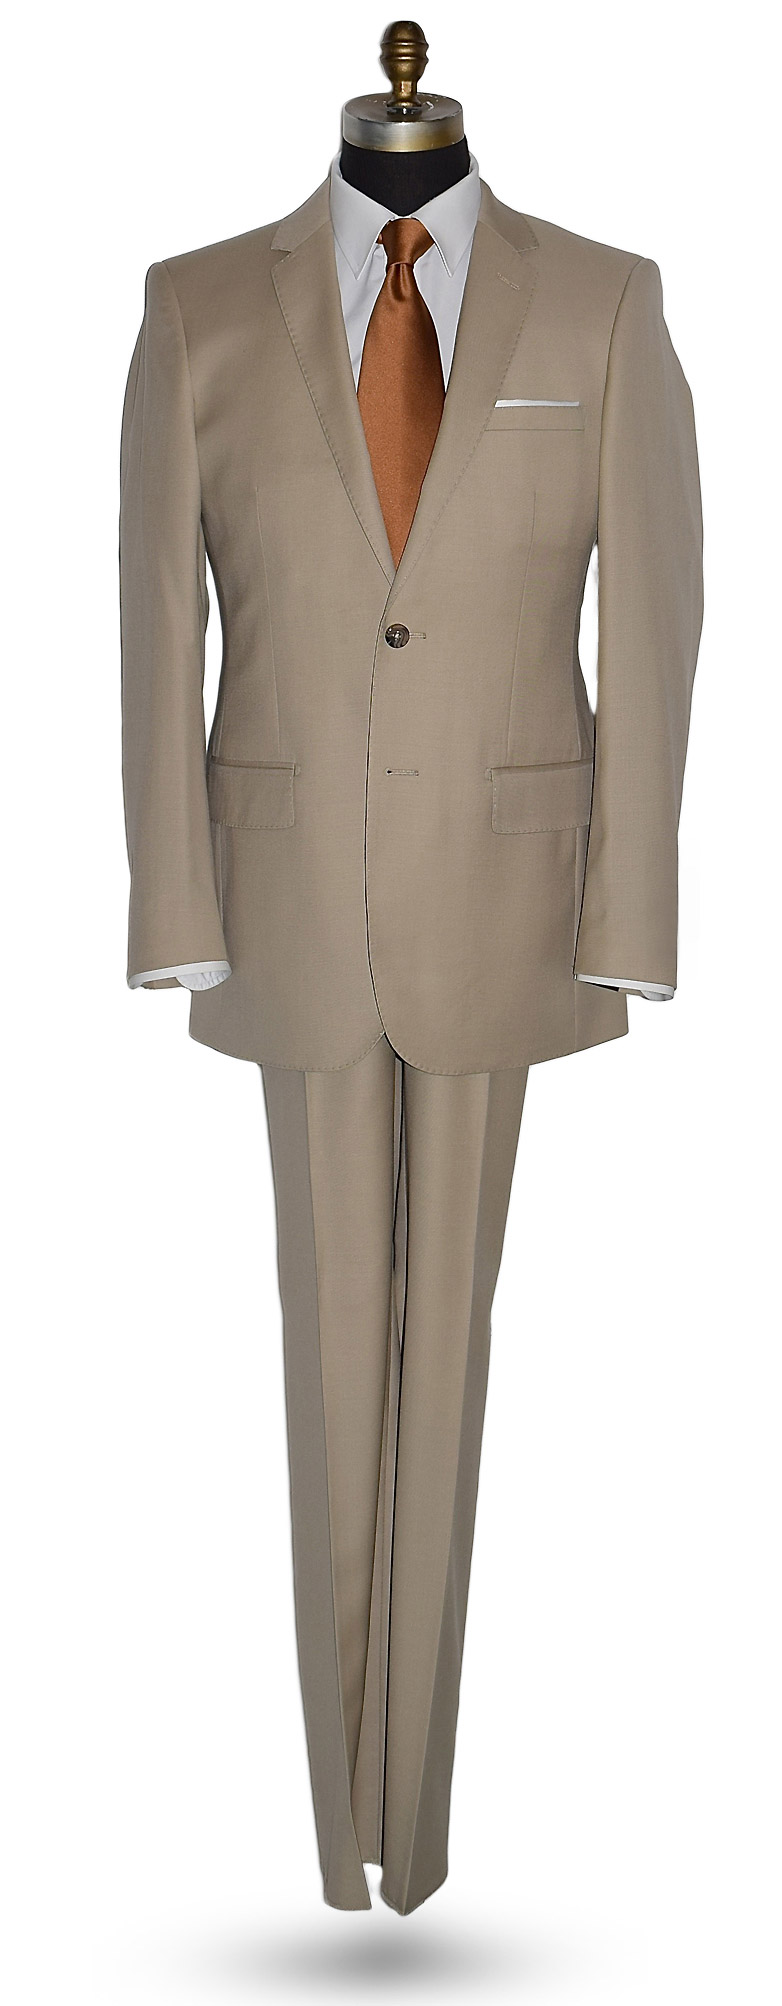 Camel Tan Suit Coat and Pants Set